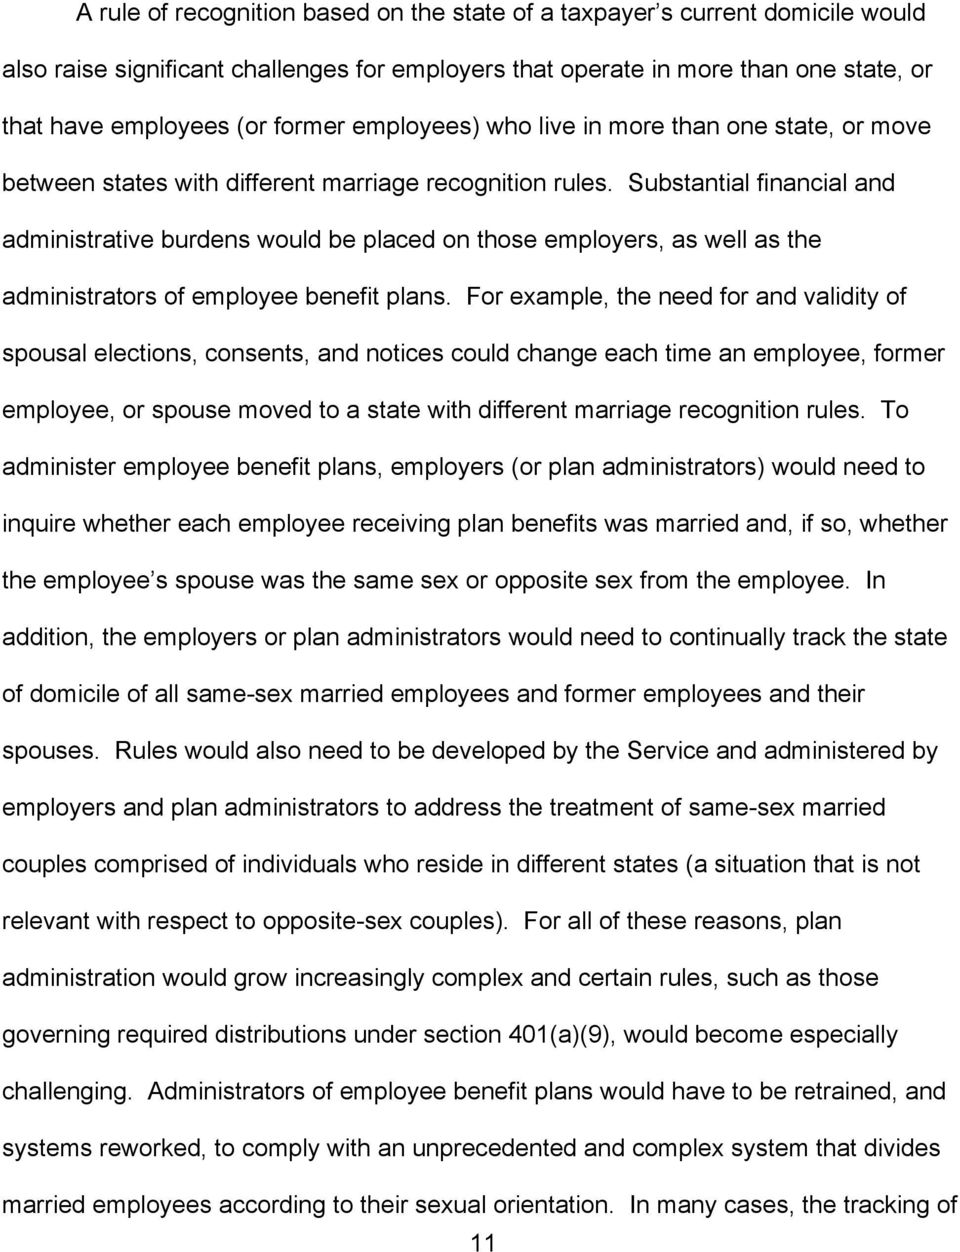 Substantial financial and administrative burdens would be placed on those employers, as well as the administrators of employee benefit plans.